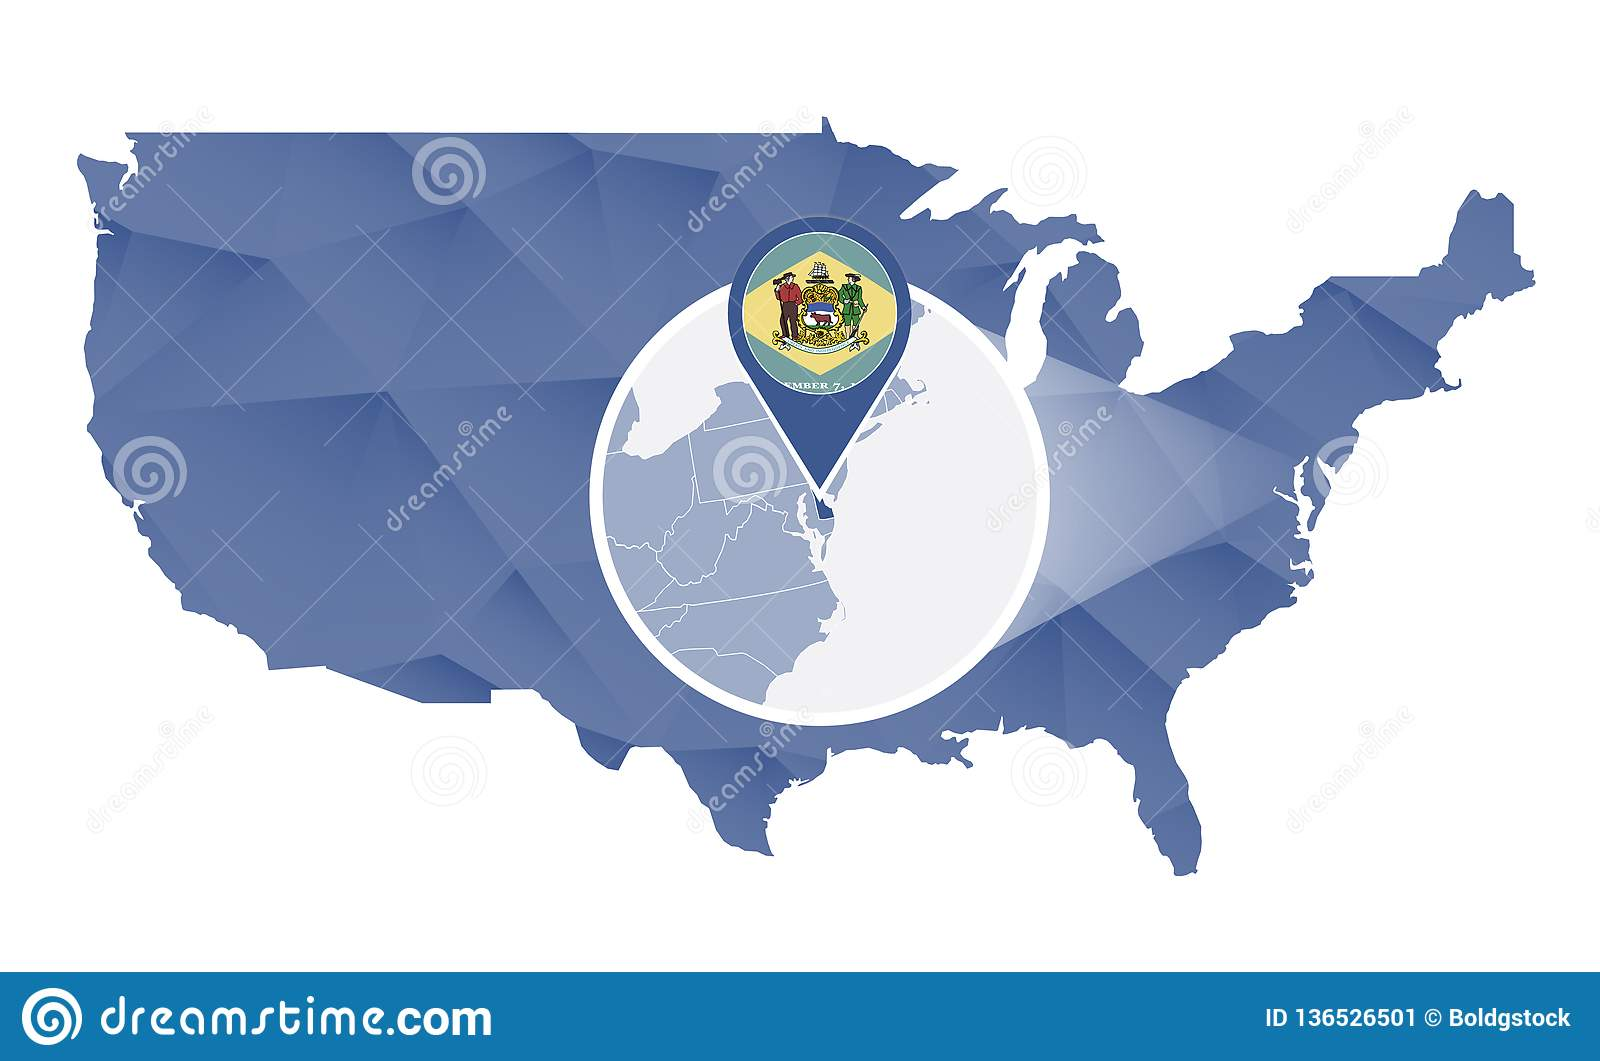 Delaware State Magnified On United States Map Stock Vector ... on delaware by counties, delaware on map, delaware agricultural map, delaware golf courses map, delaware map cities, delaware demographics, state of delaware usa, delaware ny, delaware product map, attractions in philadelphia pa usa, delaware river, delaware time, delaware real estate, delaware guide, delaware map by zip code, delaware colonial history, delaware flag, delaware mine michigan, delaware shore map,